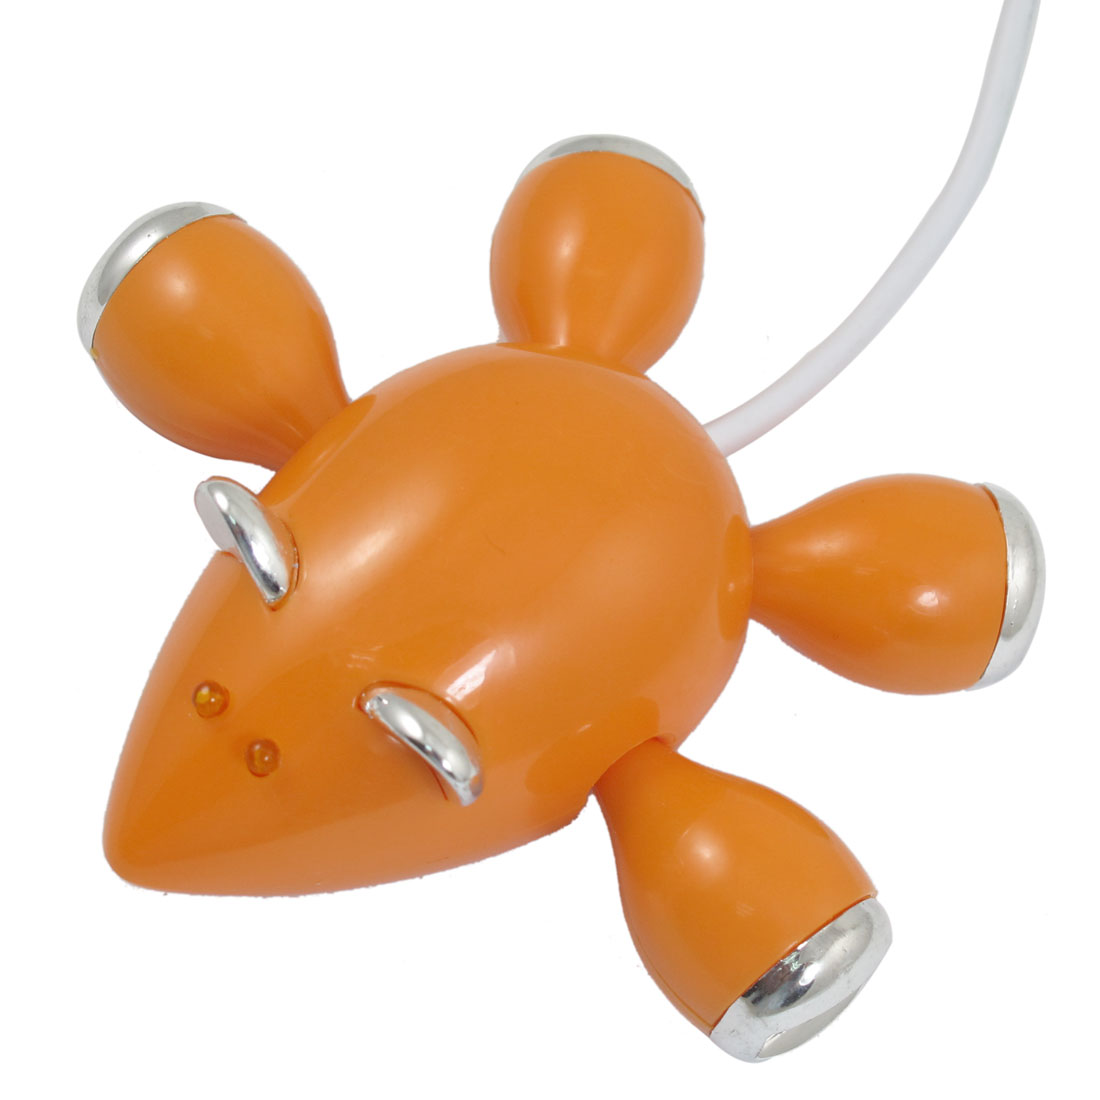 Orange Mouse 4 Ports High-Speed USB 2.0 Hub Splitter Cable Adapter